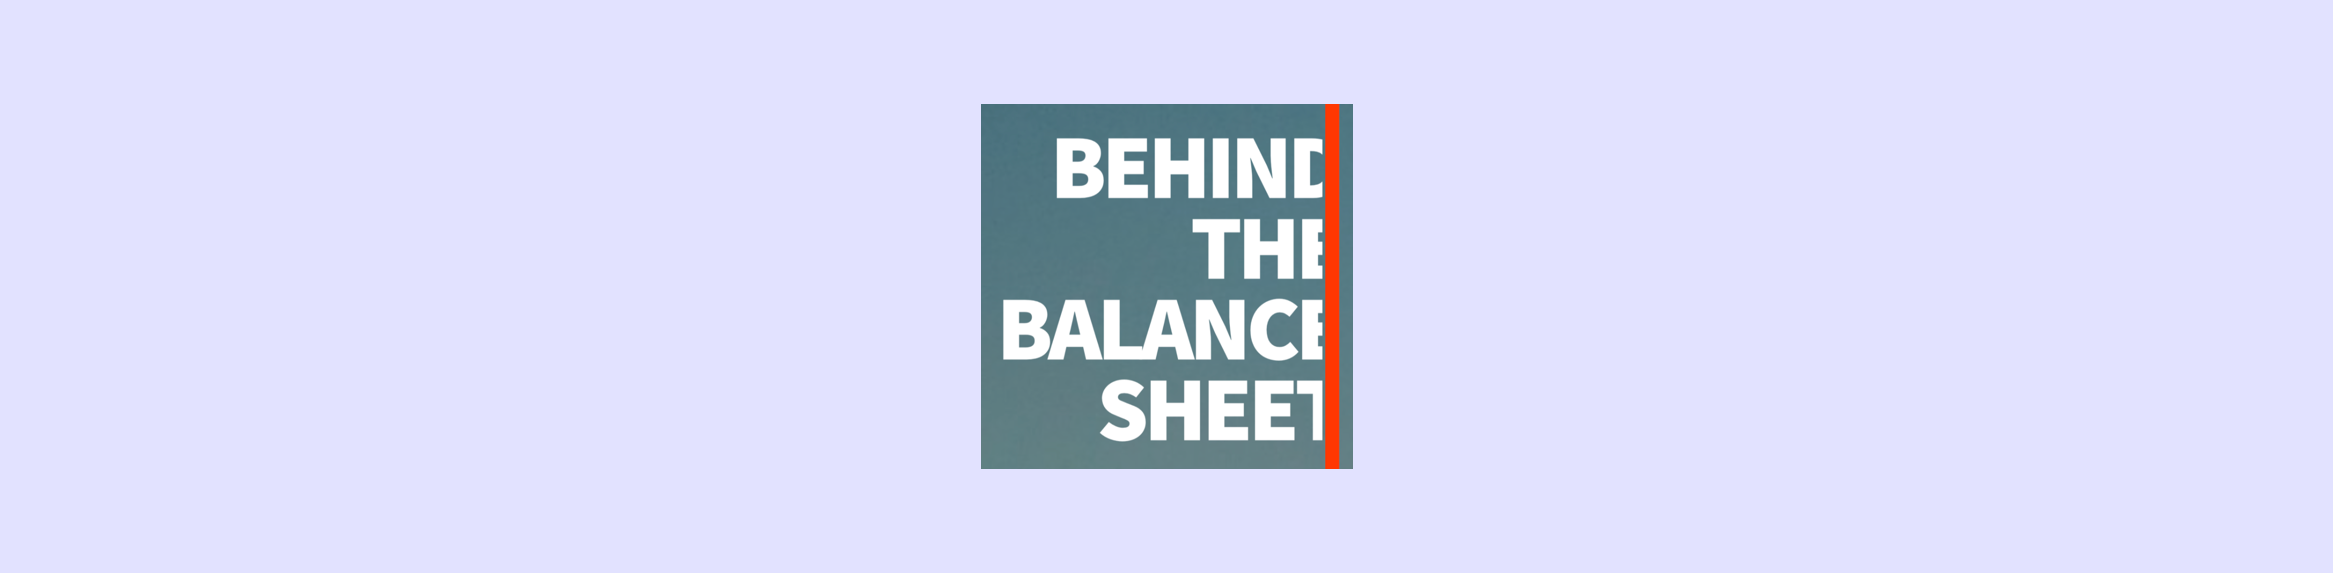 7 Best Online Stock Market Courses & Classes for Beginners in 2021 4. Behind the Balance Sheet by Stephen Clapham